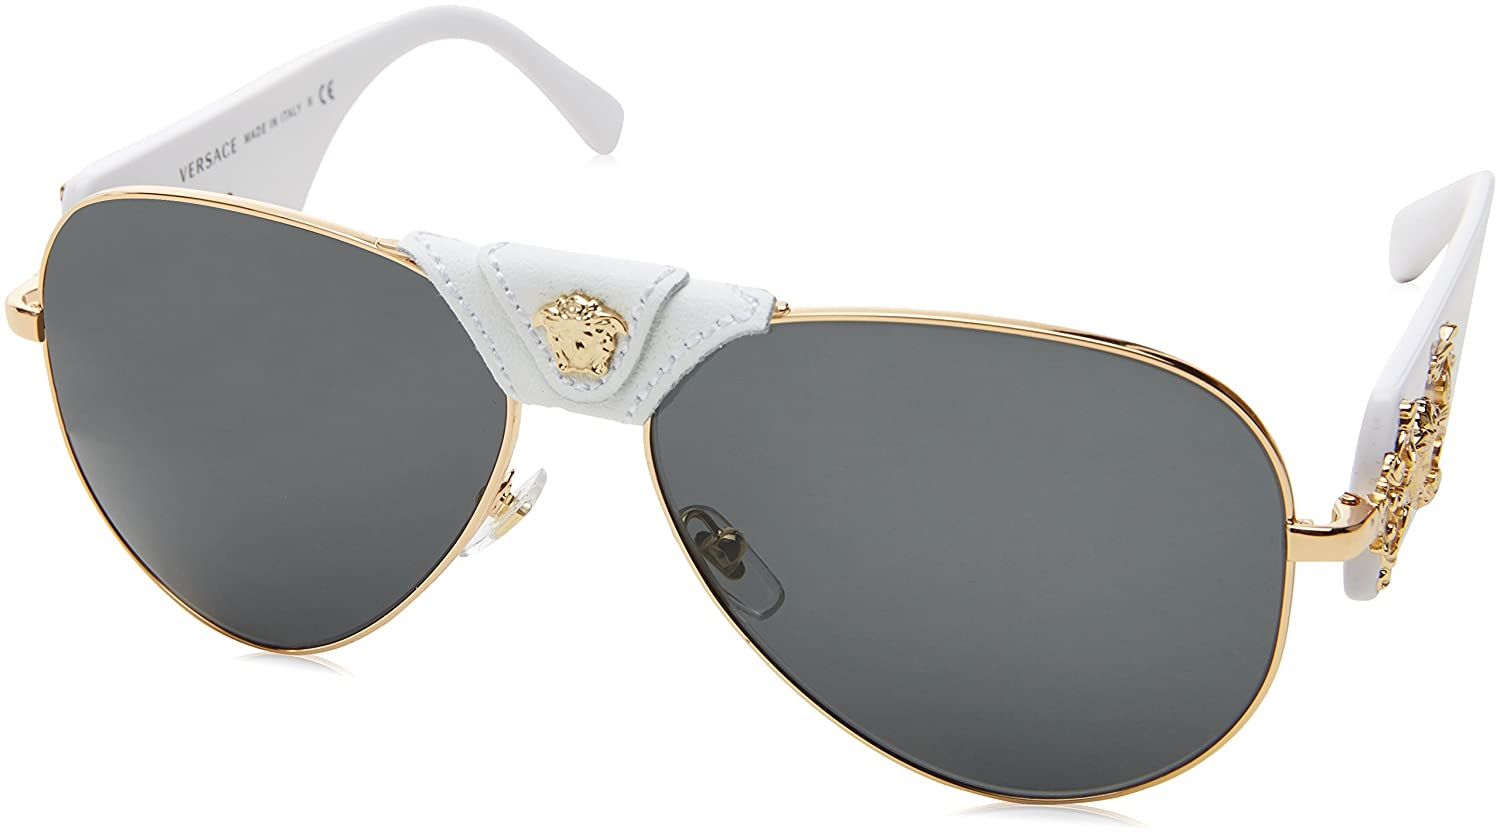 4477384dc1c5 Amazon.com  Versace Women s 0VE2150Q 1341 87 Medusa Aviator Sunglasses